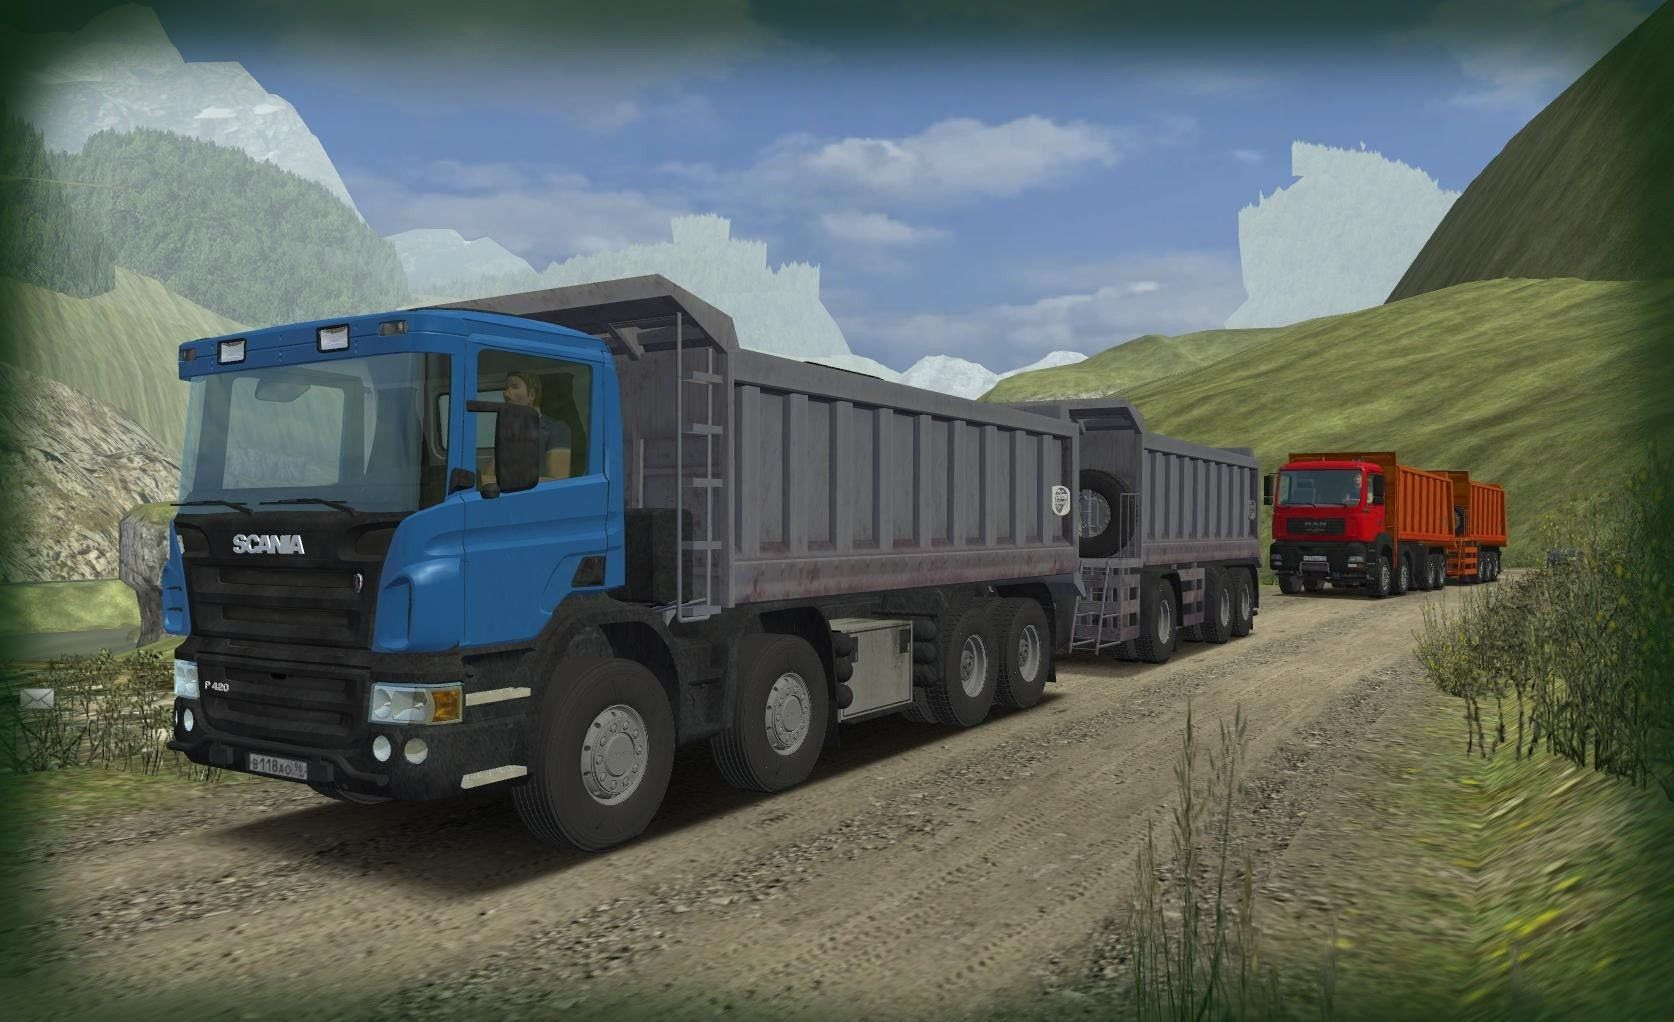 Euro Truck simulation 3d is a new android game, released